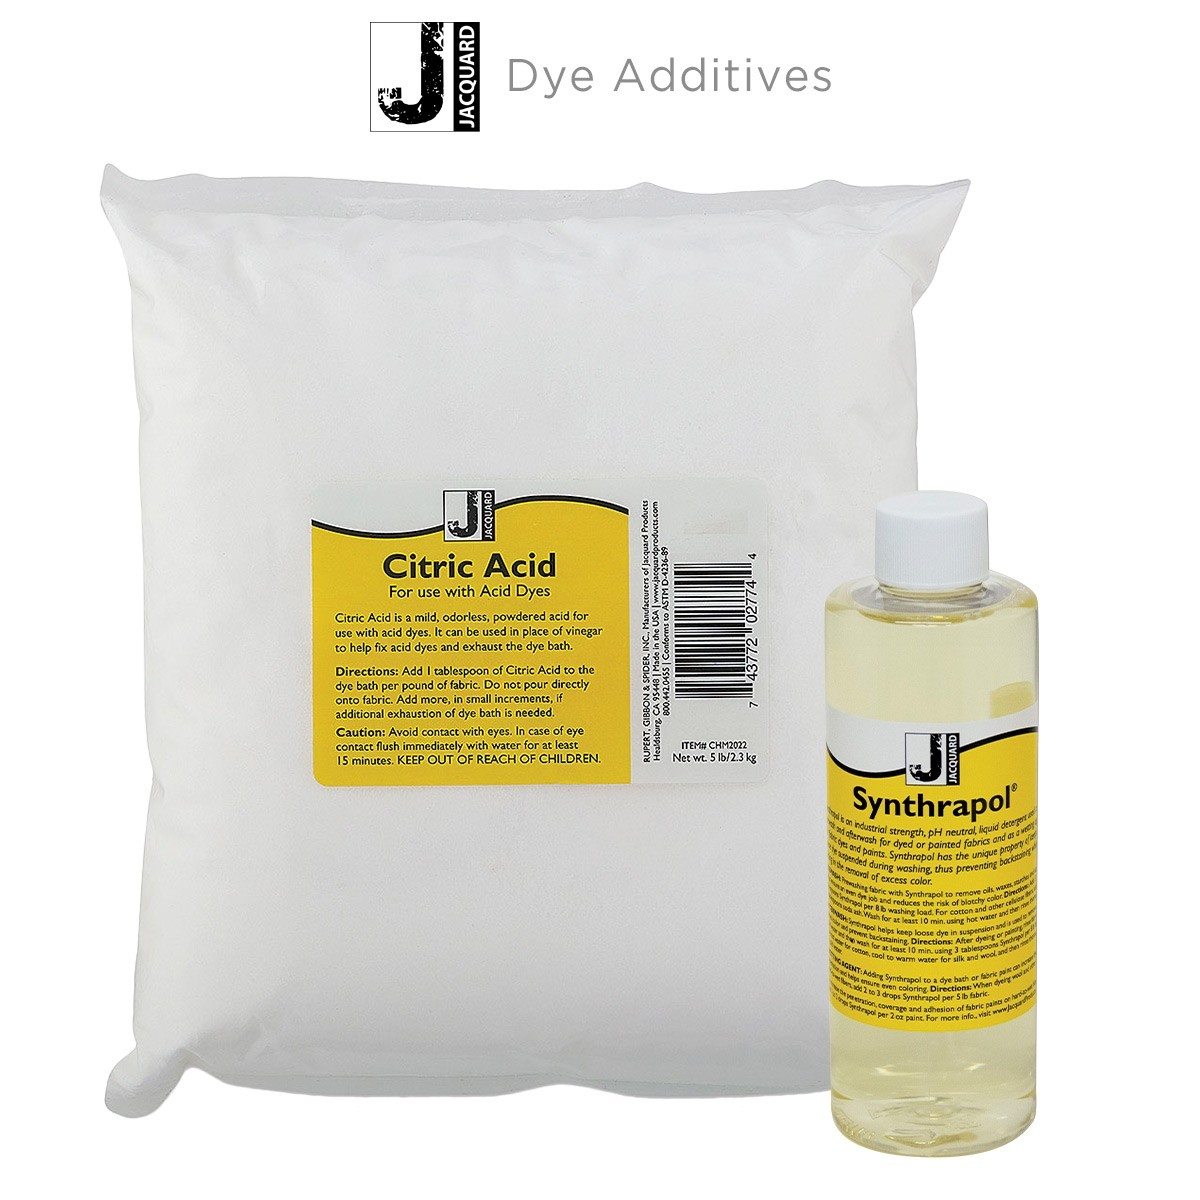 Jacquard Dye Additives